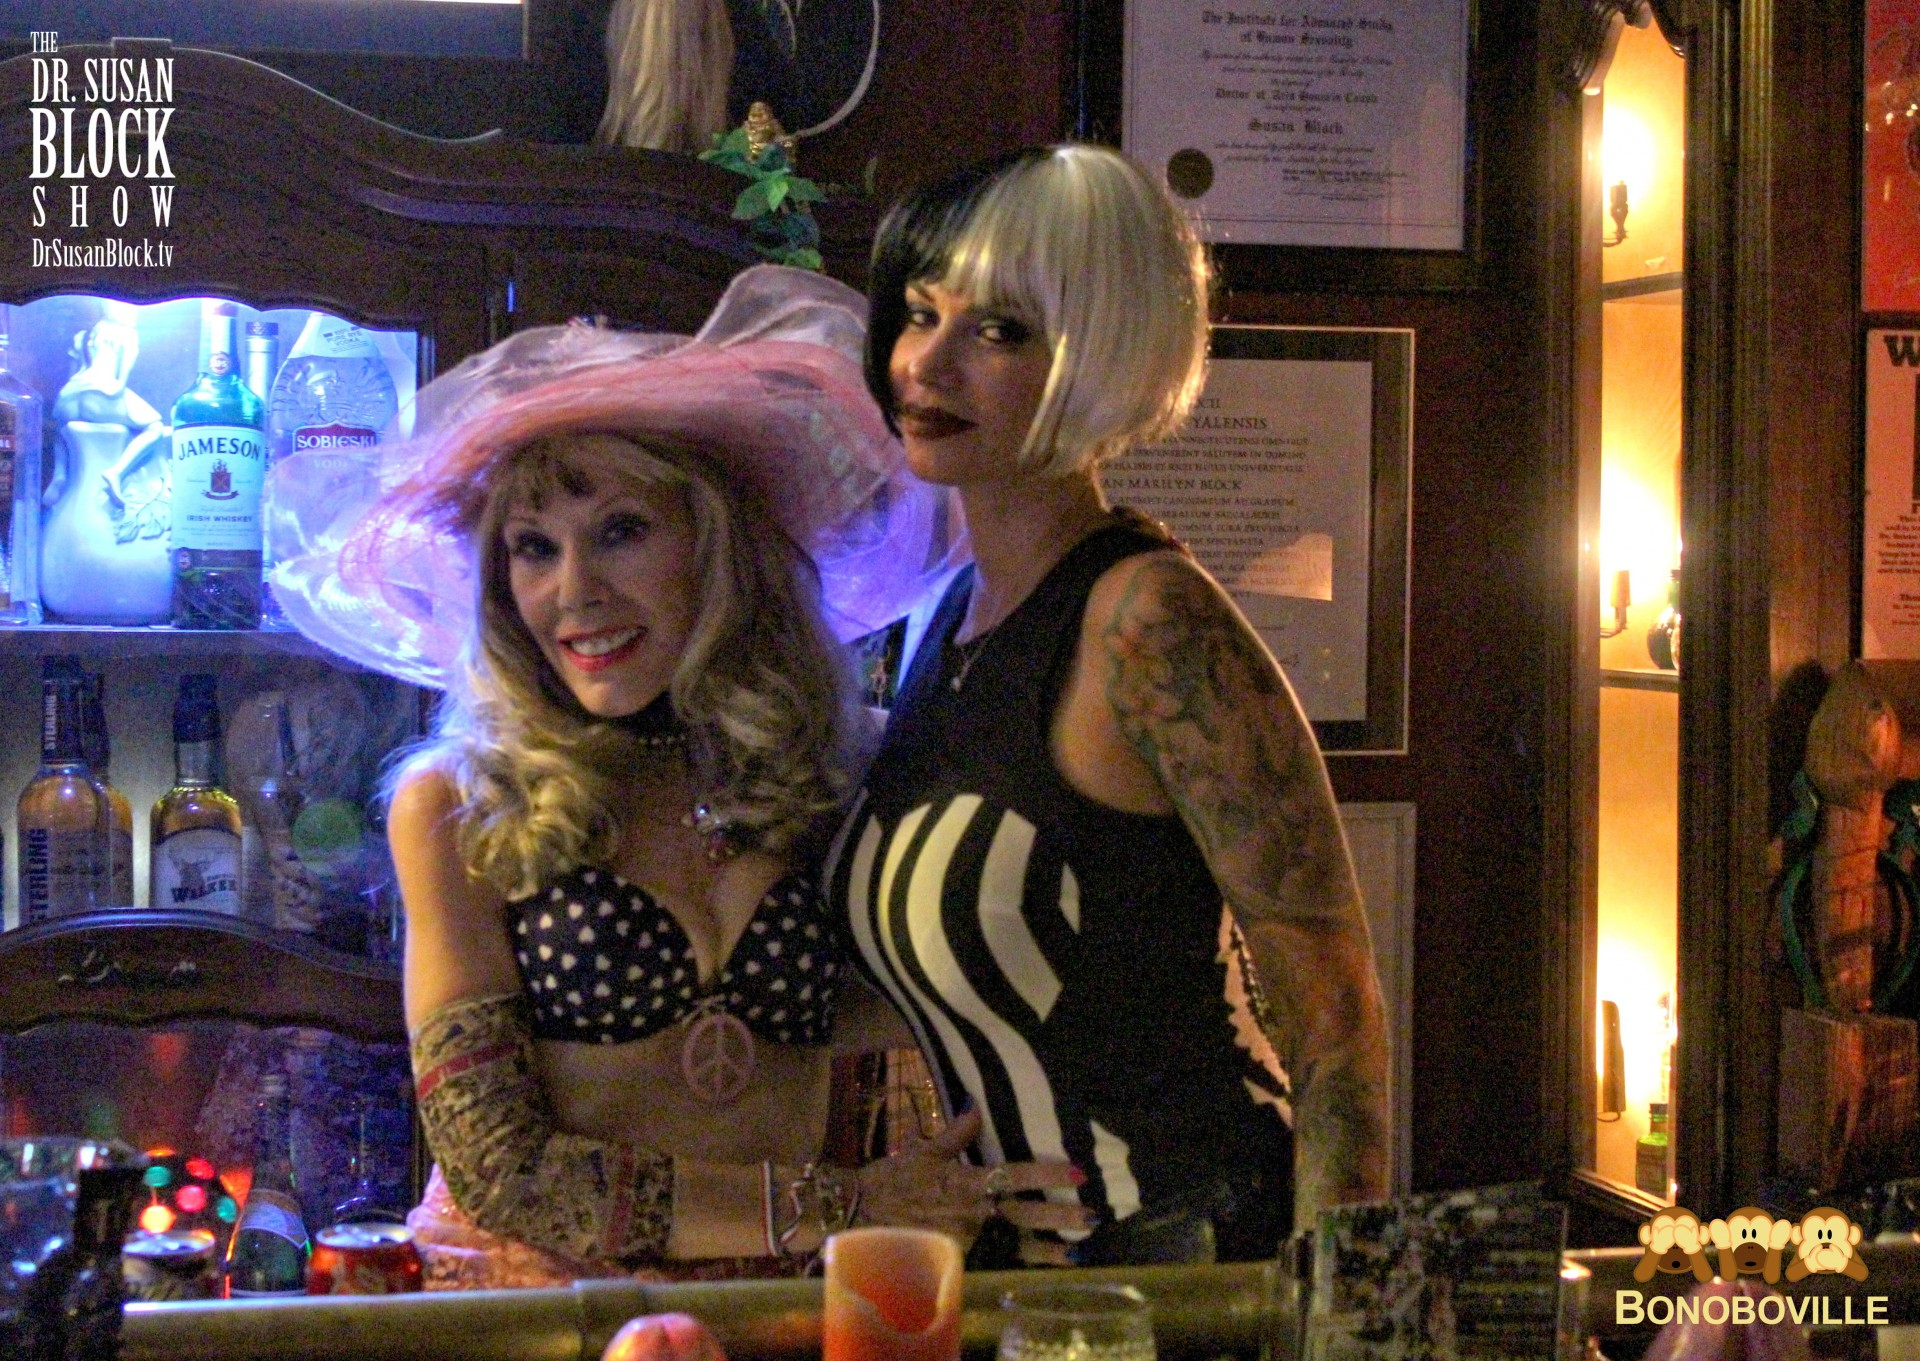 With Shannon, Mistress of the Bonoboville Bar. Photo: Sarah Bella